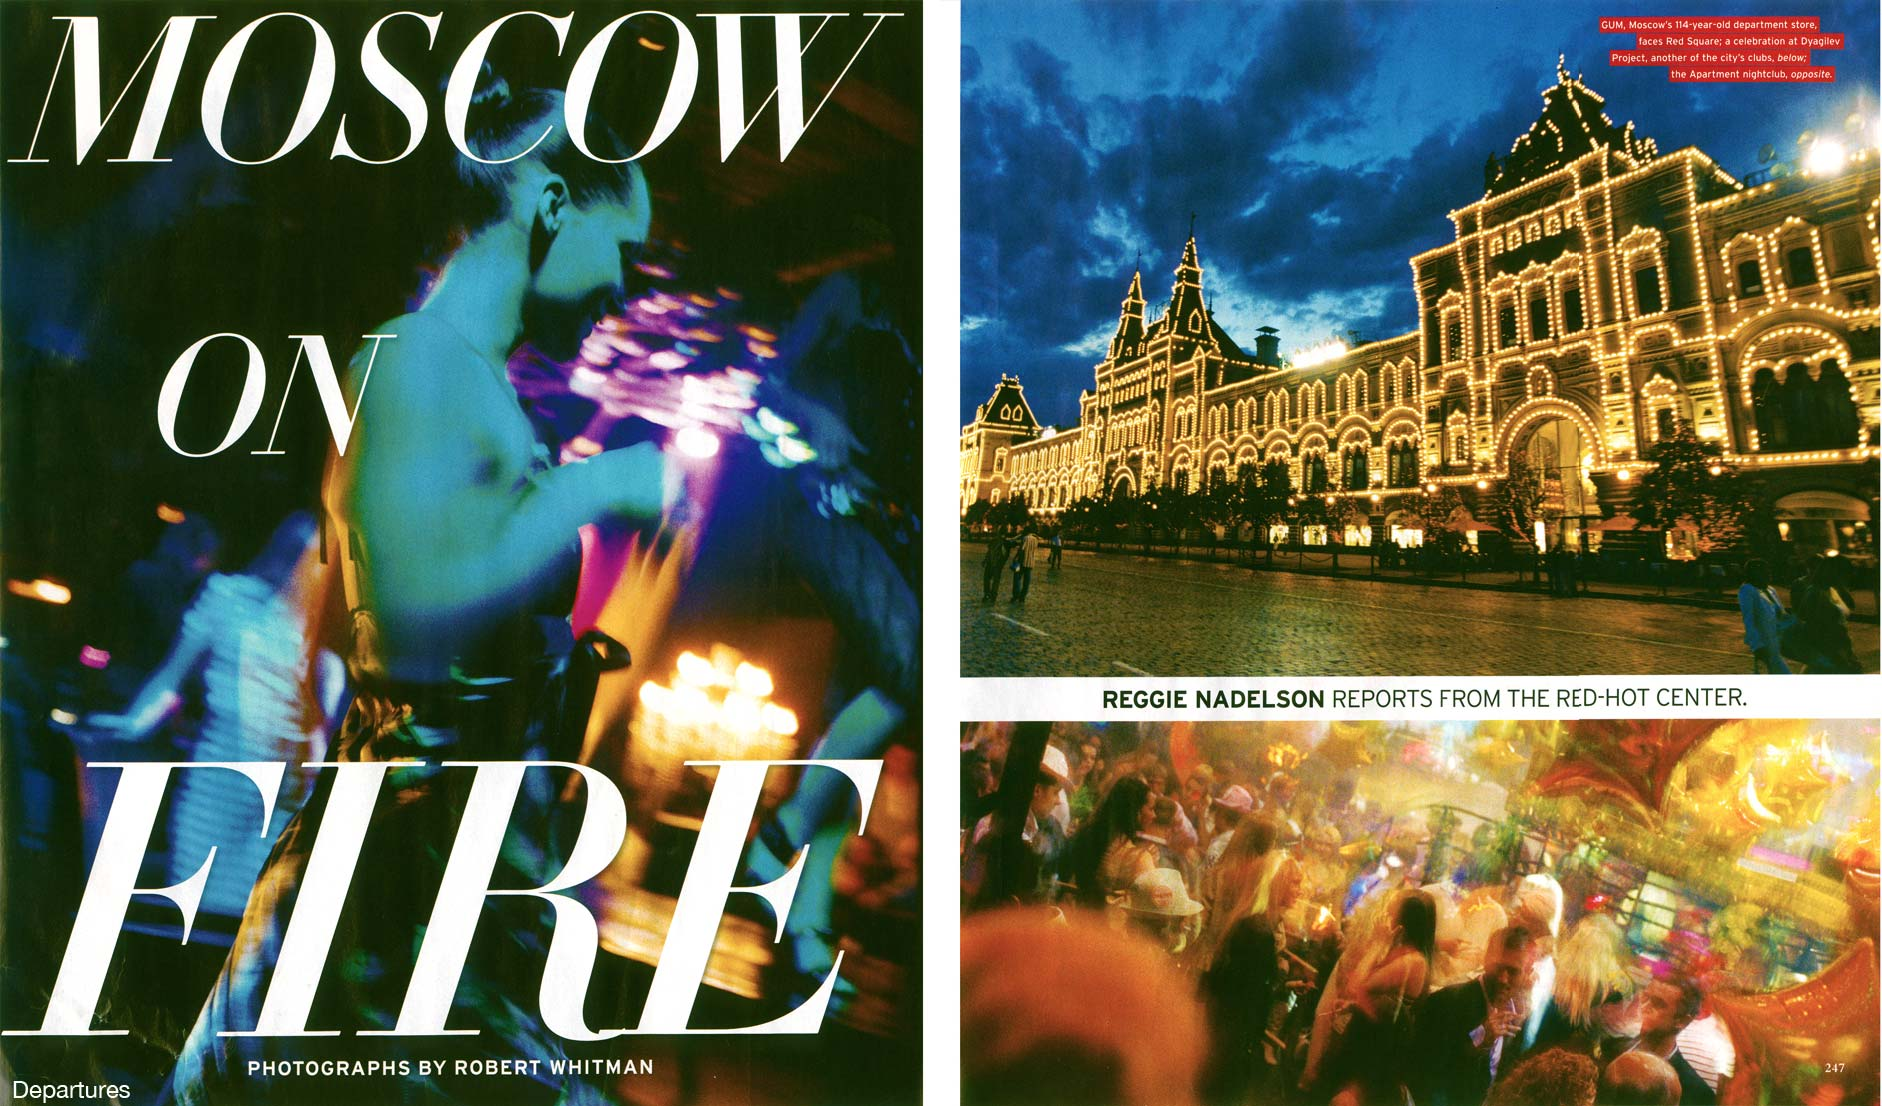 robert_whitman_moscow_on_fire_Departures